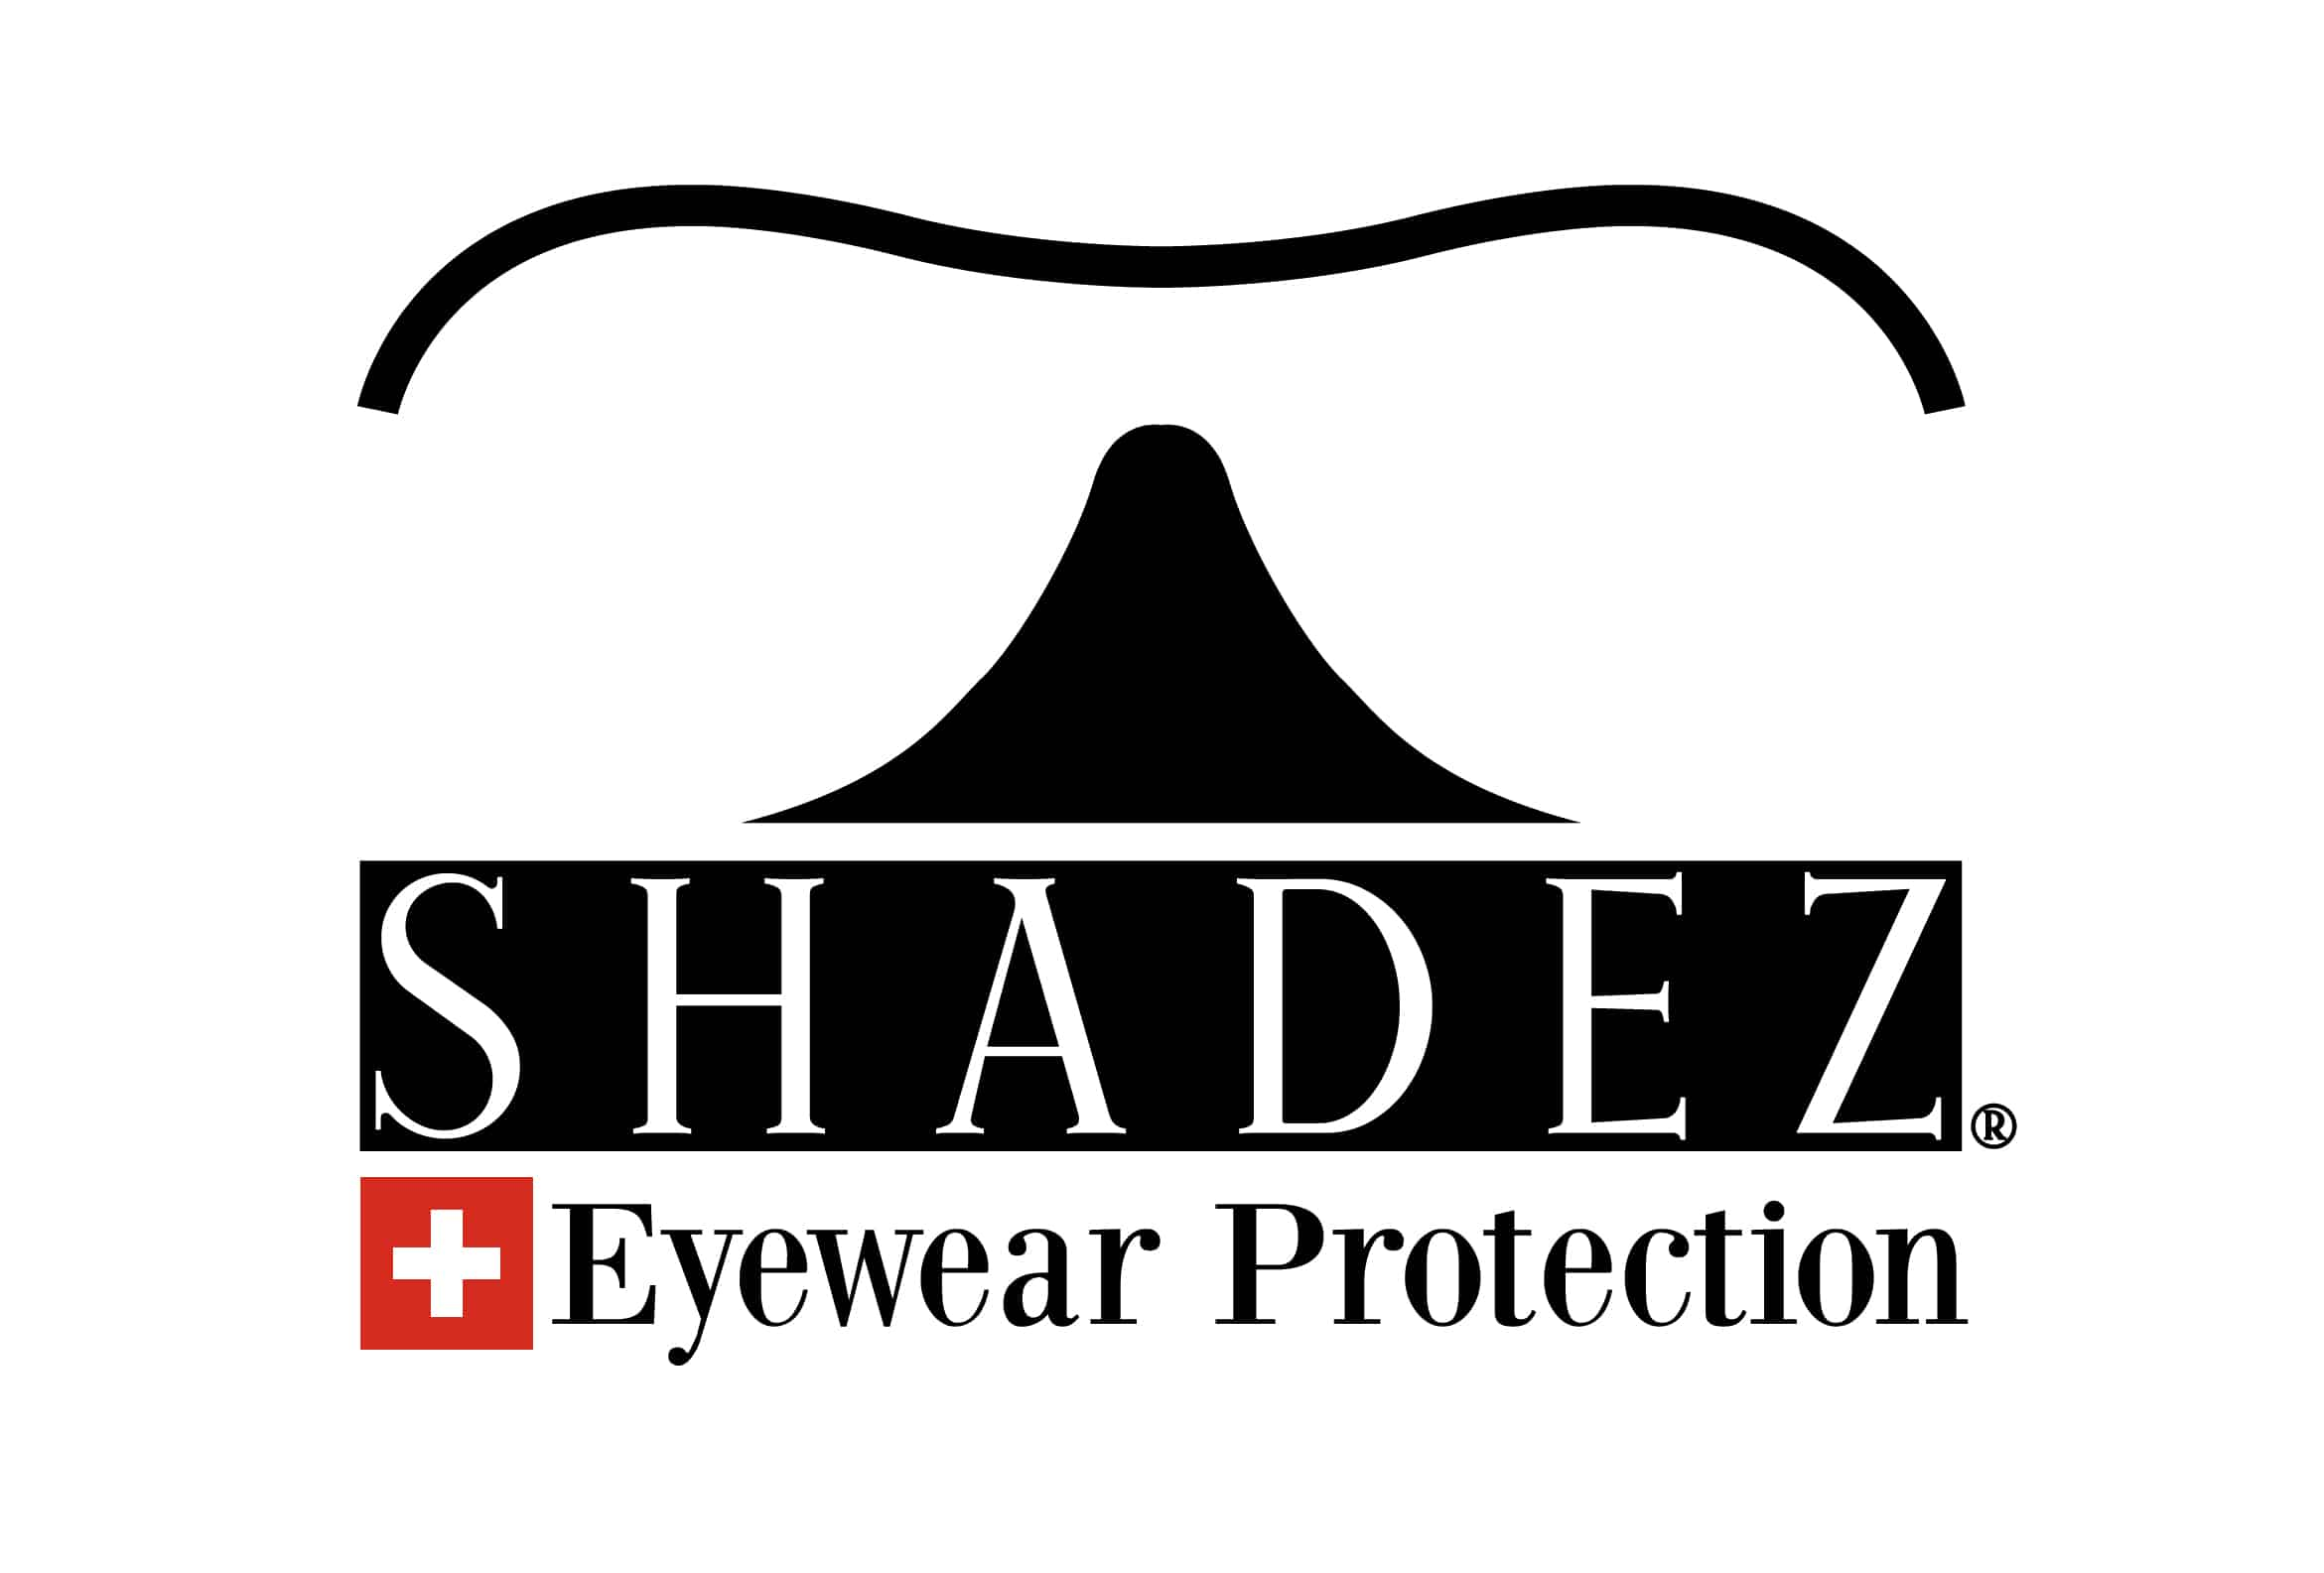 Shadez Eyewear Protection